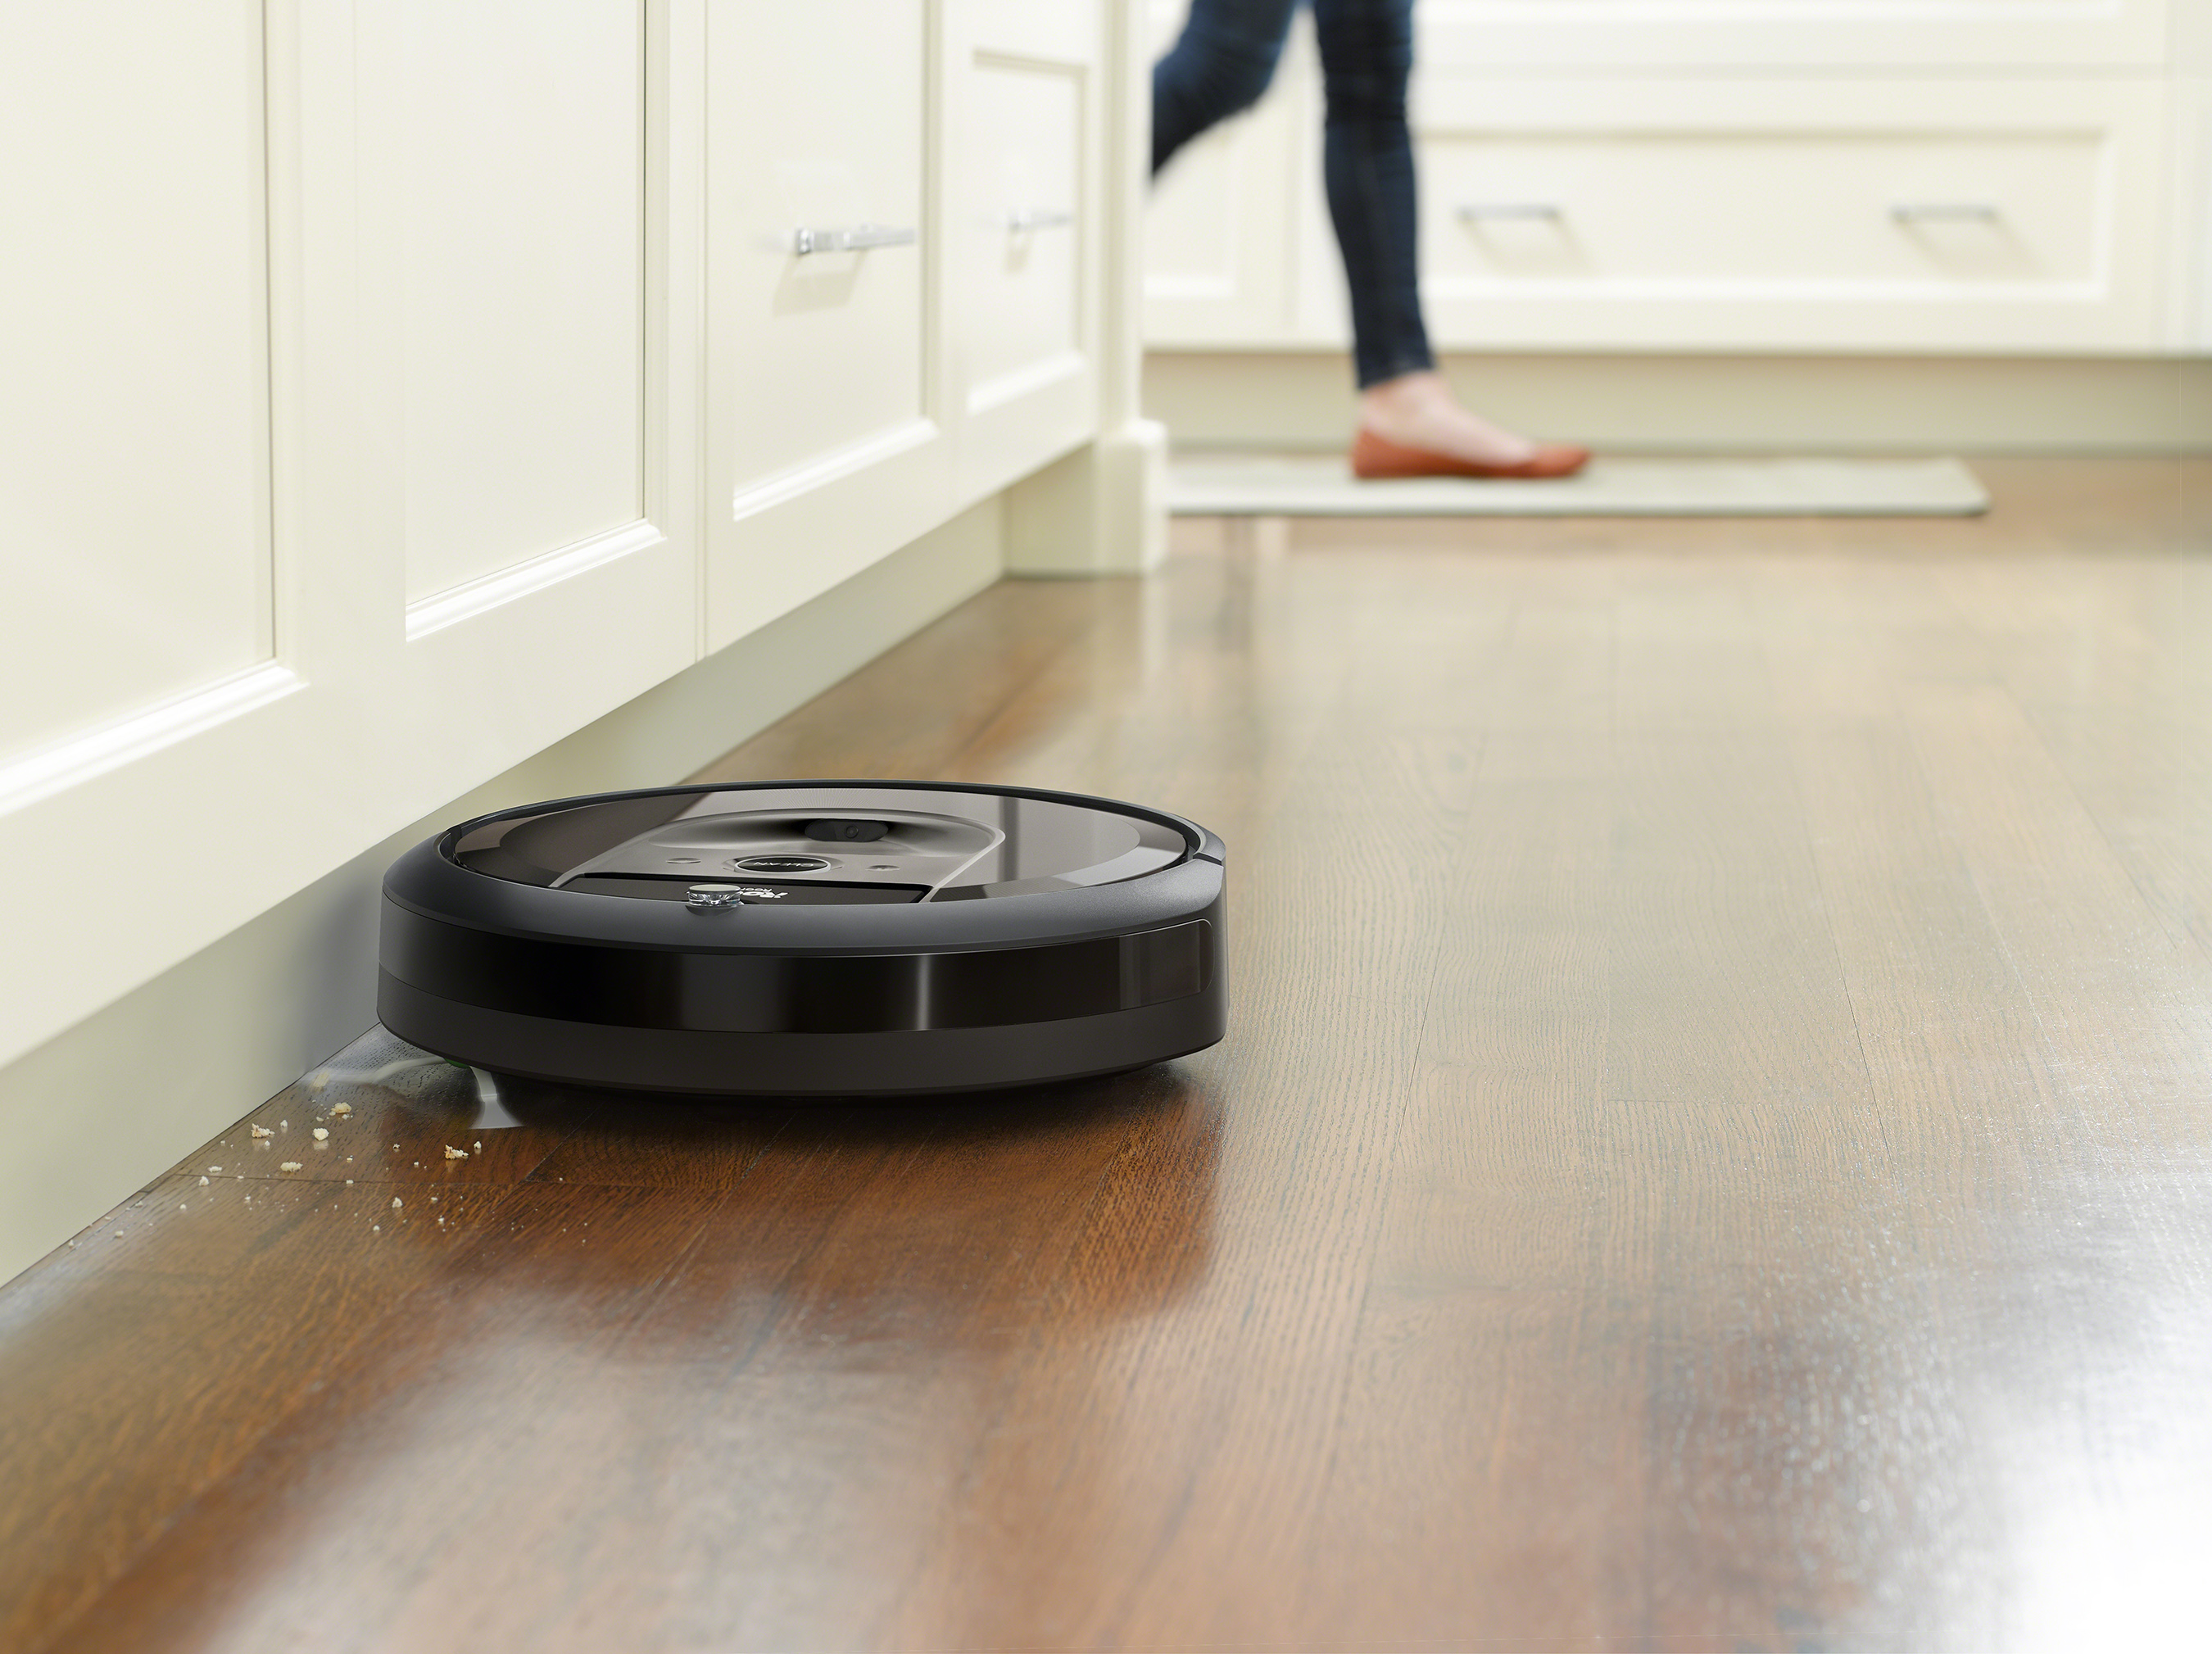 The Roomba i7+ brings a new level of intelligence and automation to robotic vacuum cleaners with the ability to learn, map and adapt to a home's floor plan.